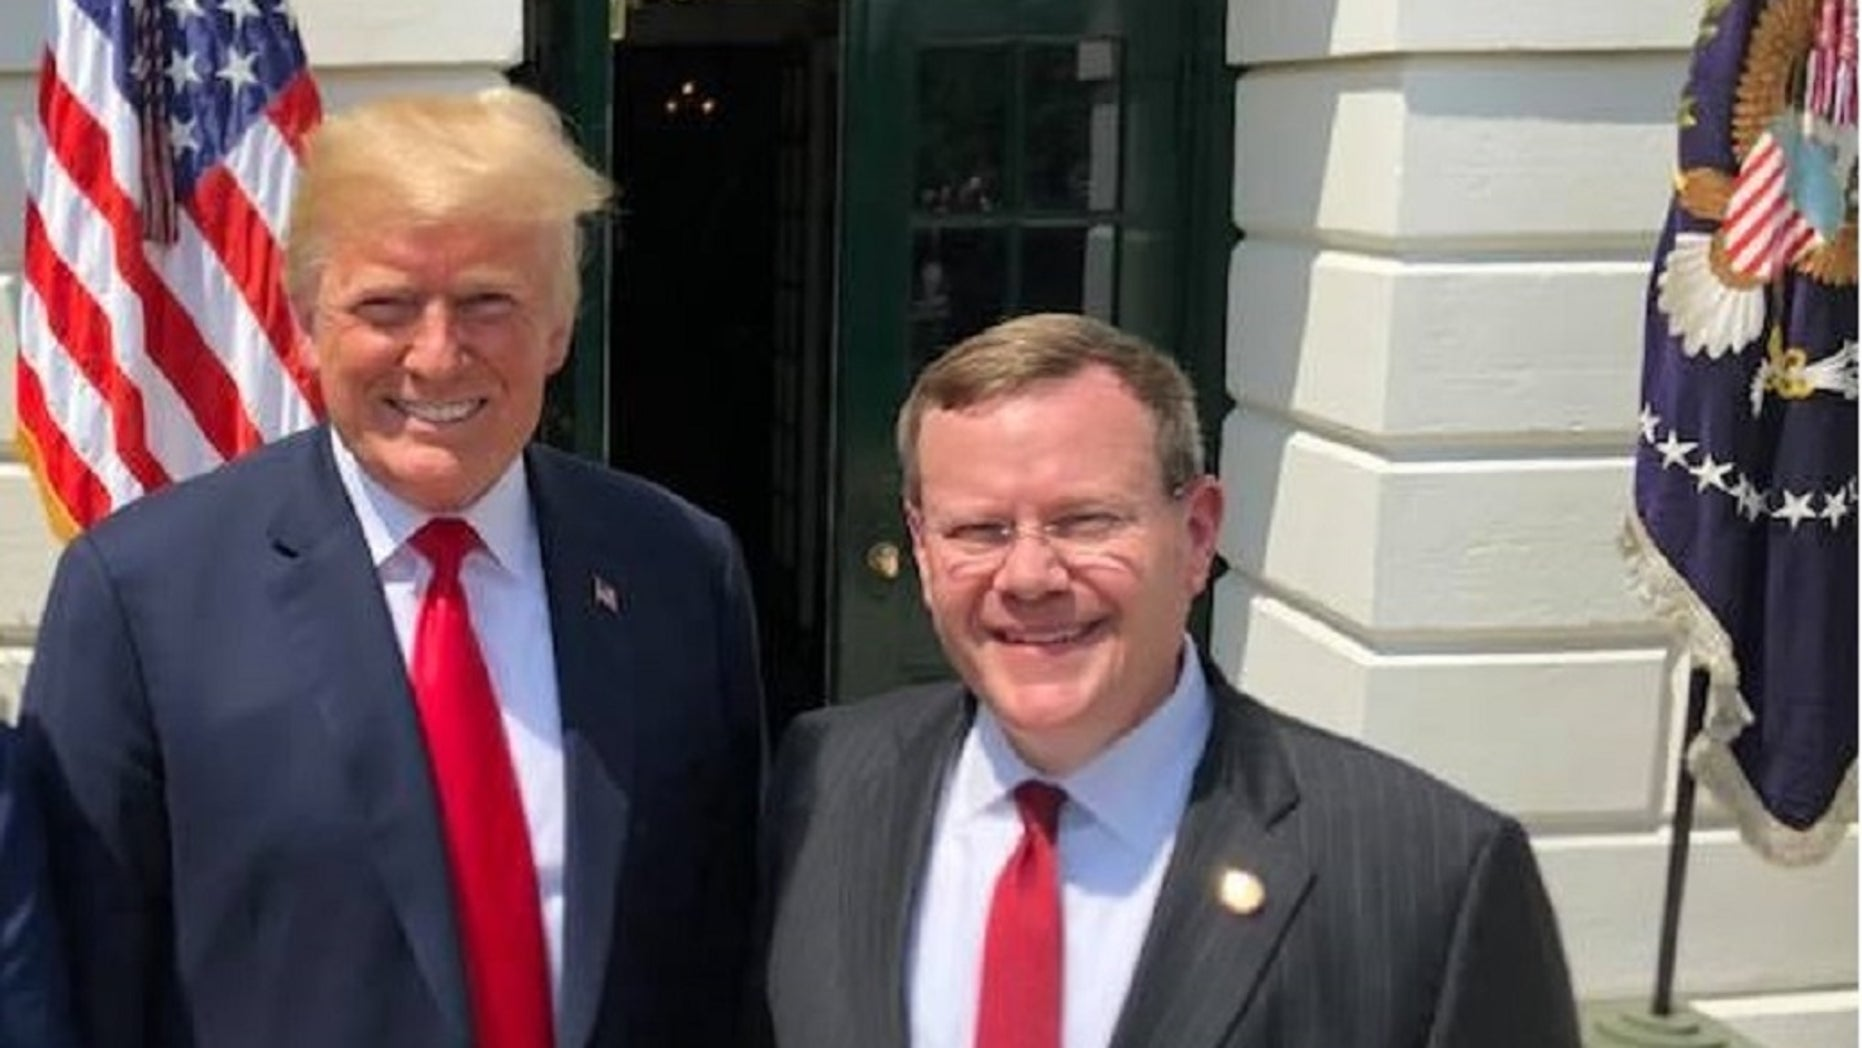 North CarolinaHouse Speaker Tim Moore, shown with President Trump in an undated photo, became the latest state lawmaker to invite the president to deliver his State of the Union address away from Washington, D.C. (State Rep.Tim Moore)